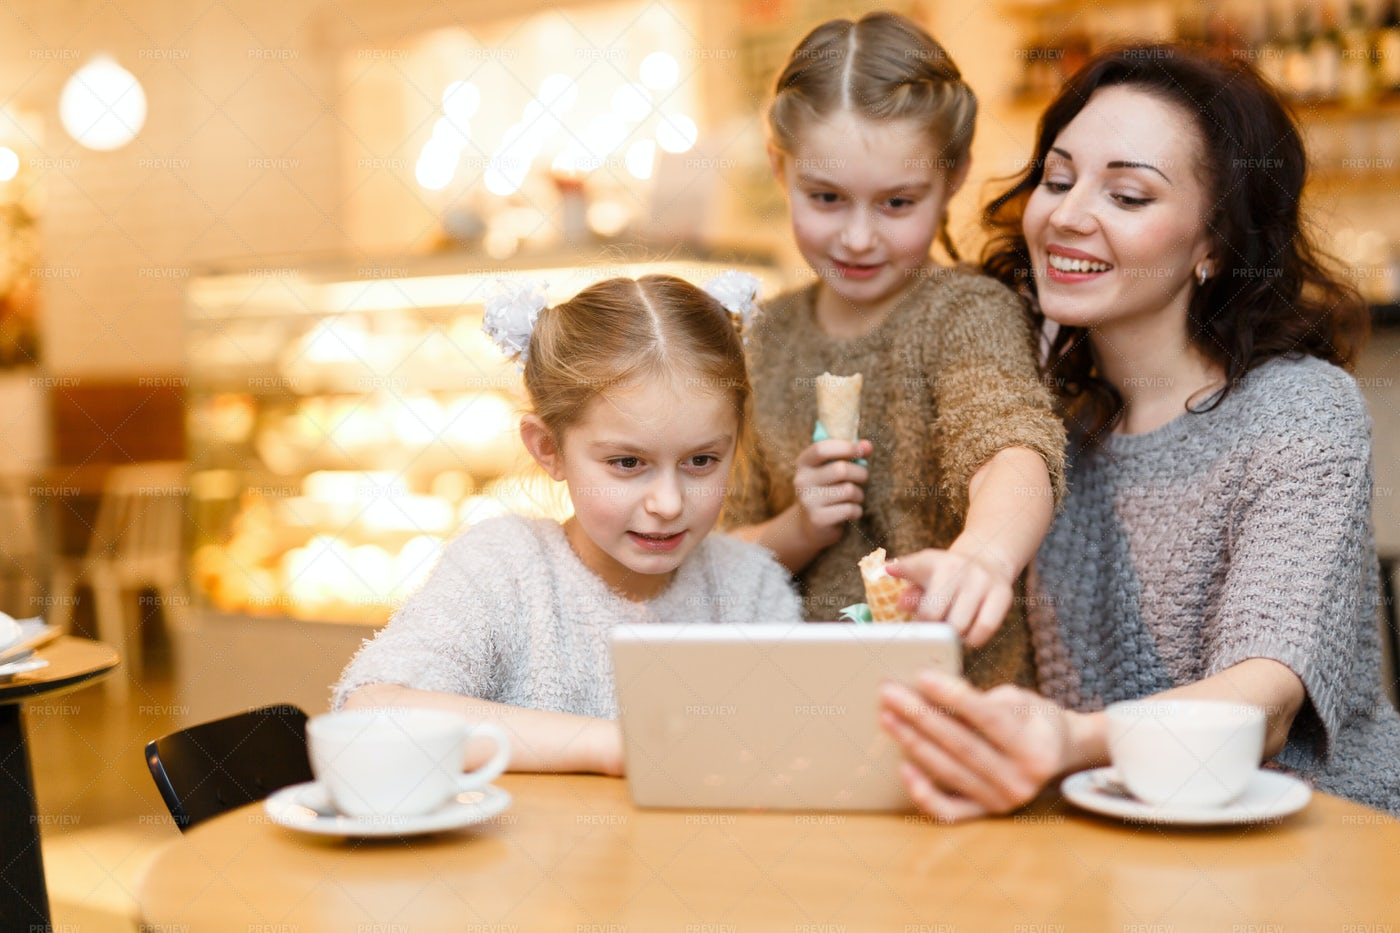 Wi-fi In Cafe: Stock Photos